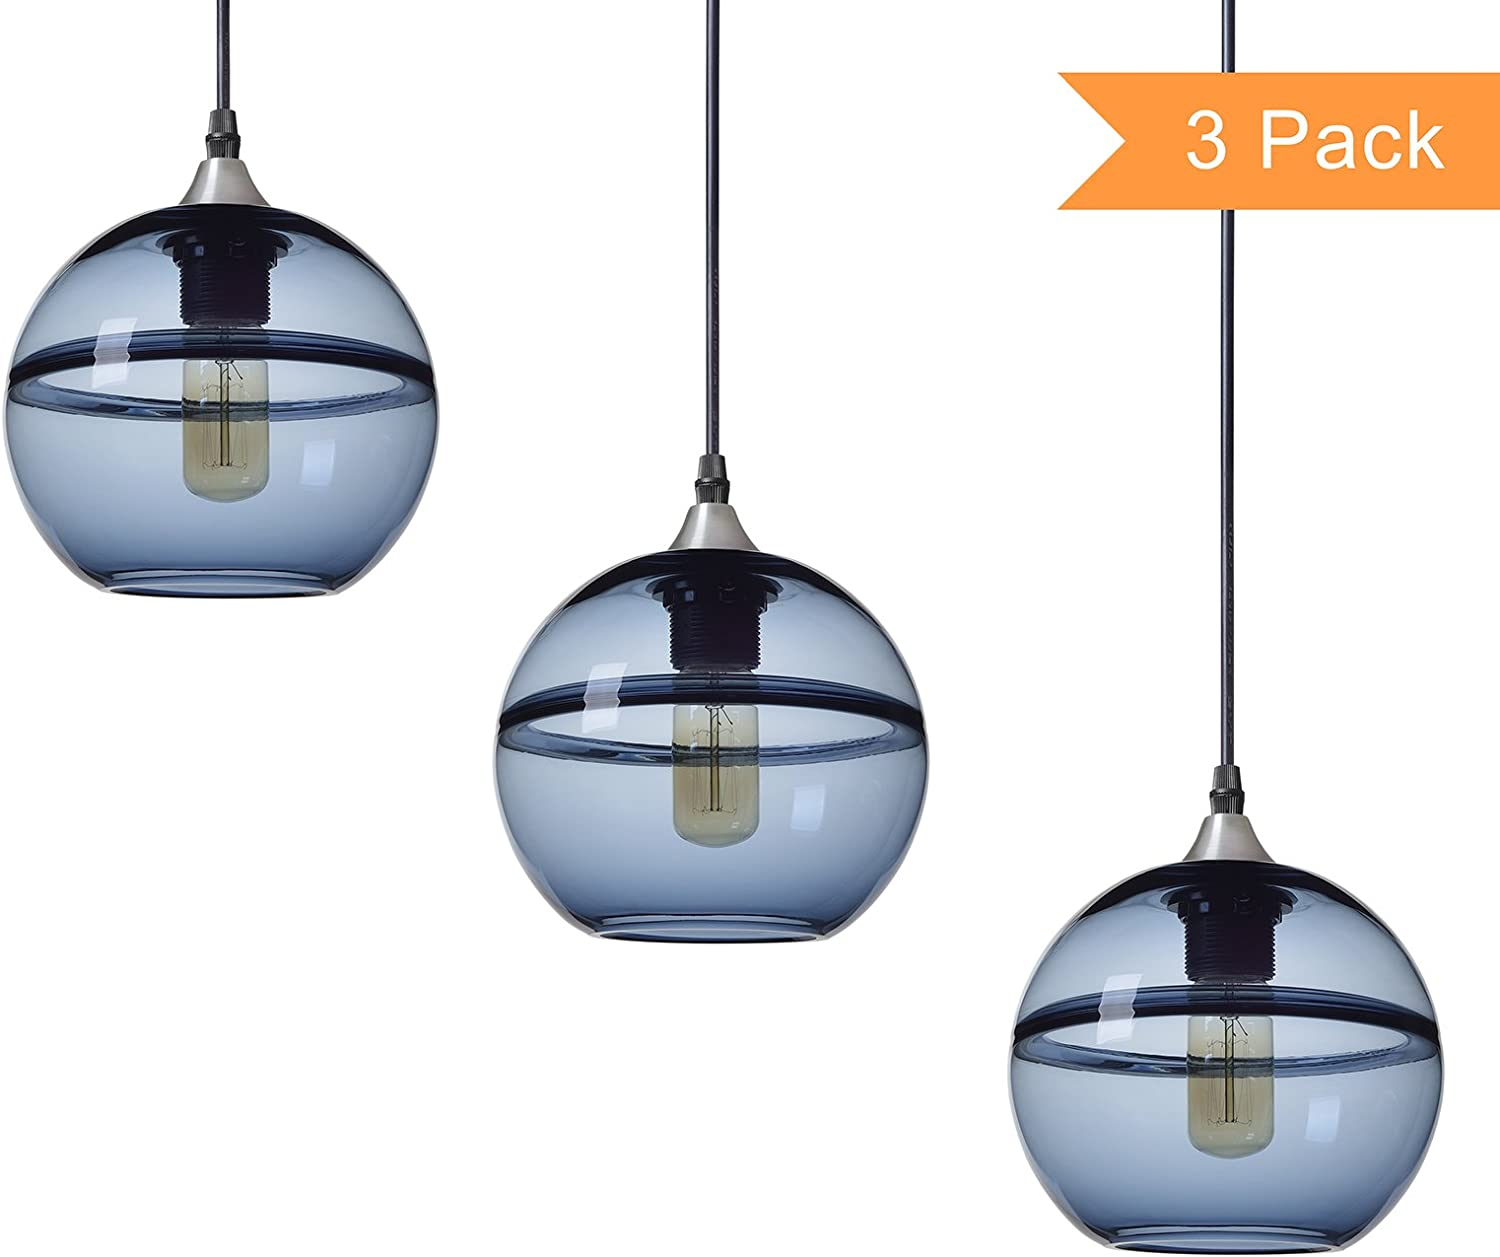 Casamotion Pendant Lighting Handblown Glass Drop Hanging Light, Unique Optic Glass Pendant Lamp, Brushed Nickel Finish, Grey Blue, 7 , 3-Pack